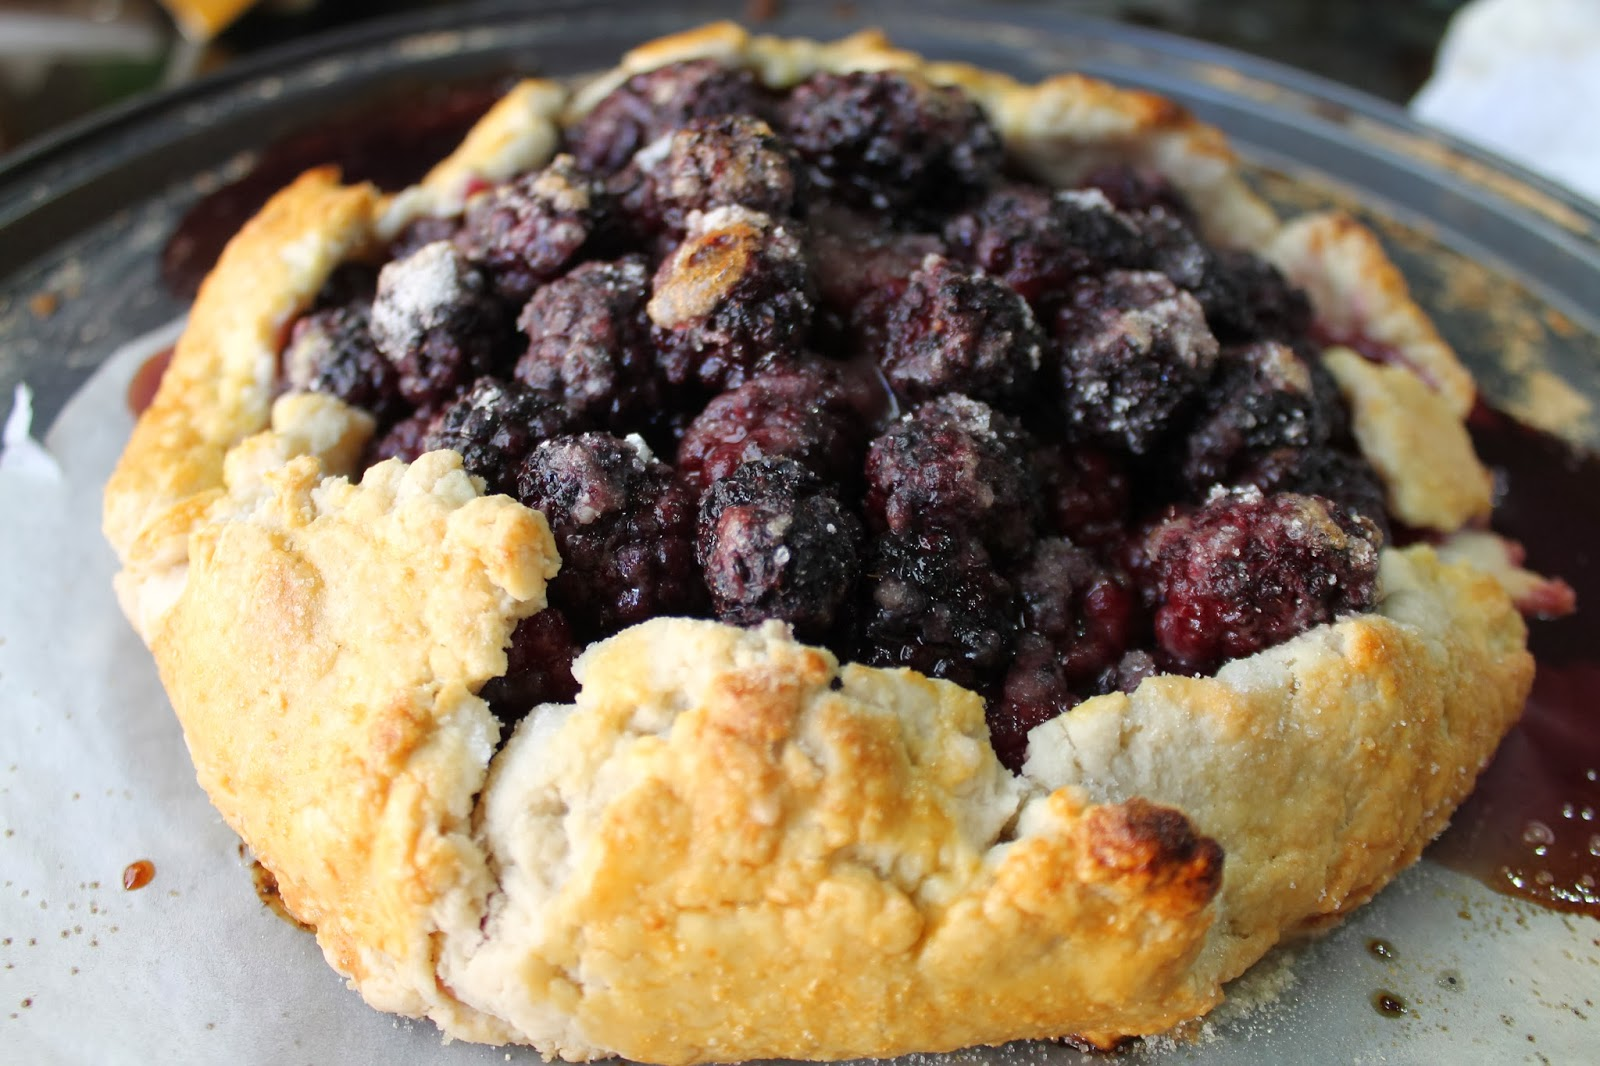 ... Made For Baking: Blackberry Galette With Homemade Whipped Cream Recipe